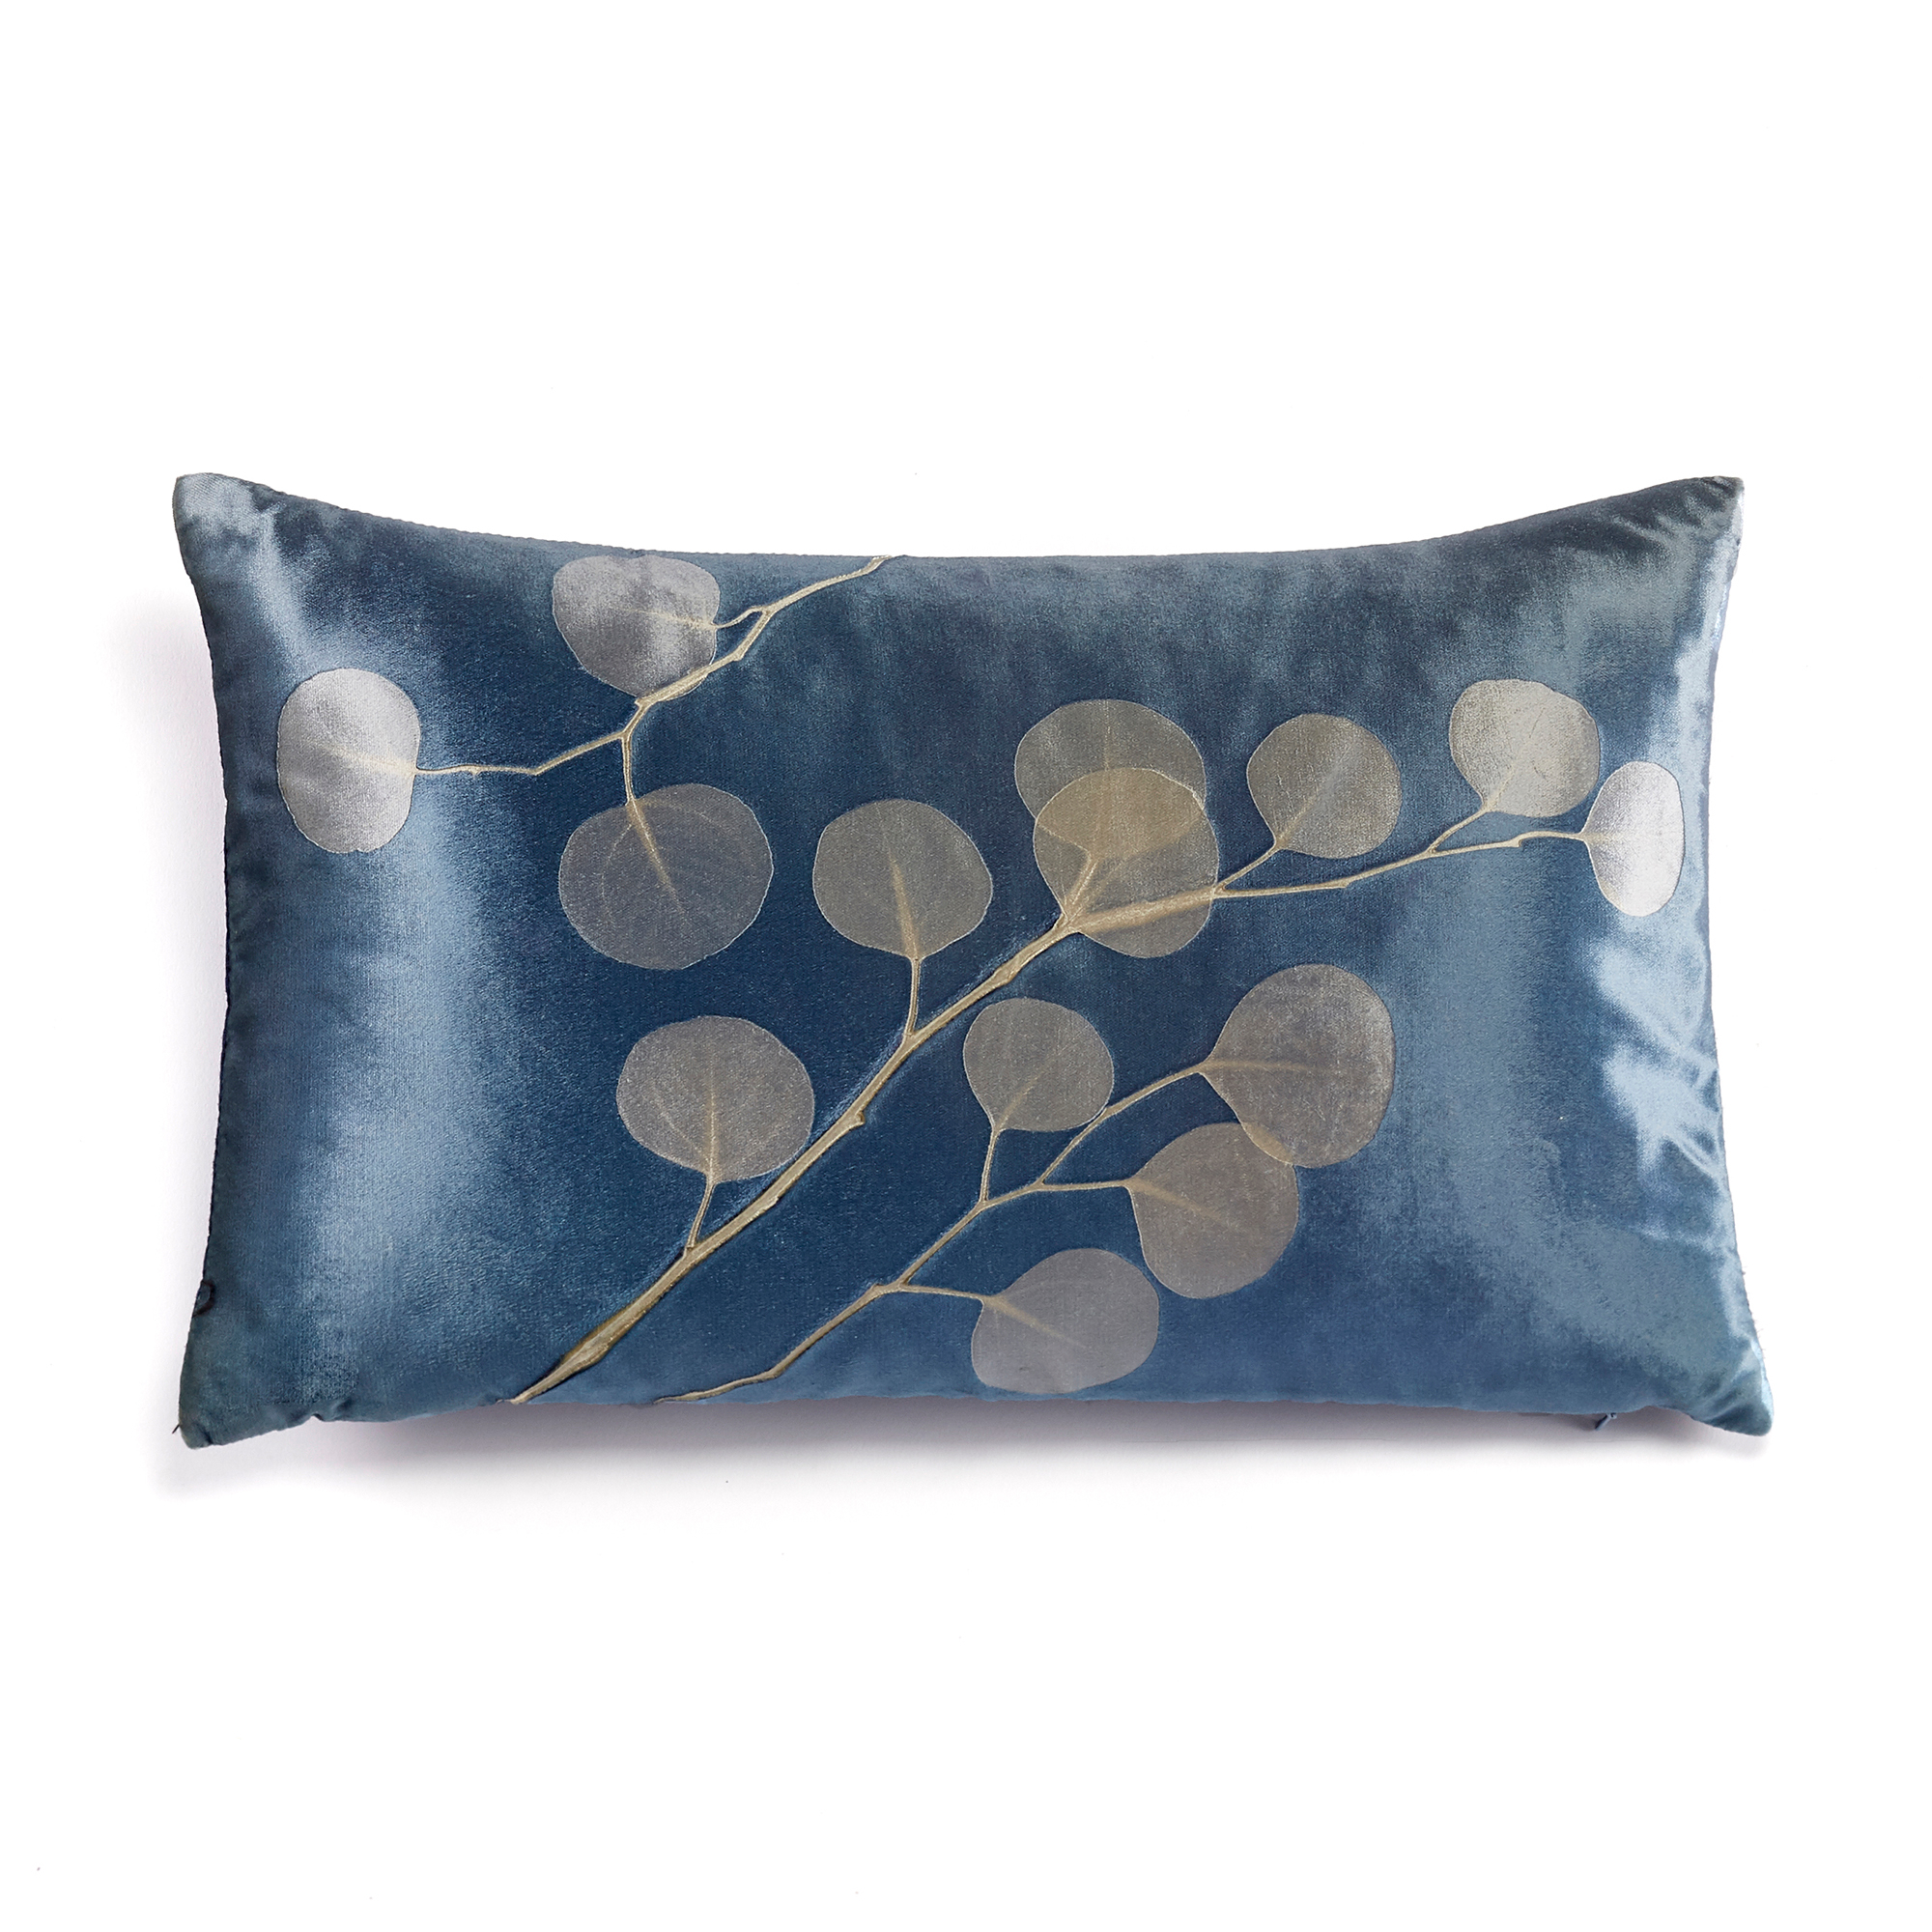 Aviva Stanoff Velvet Leaf Pillow